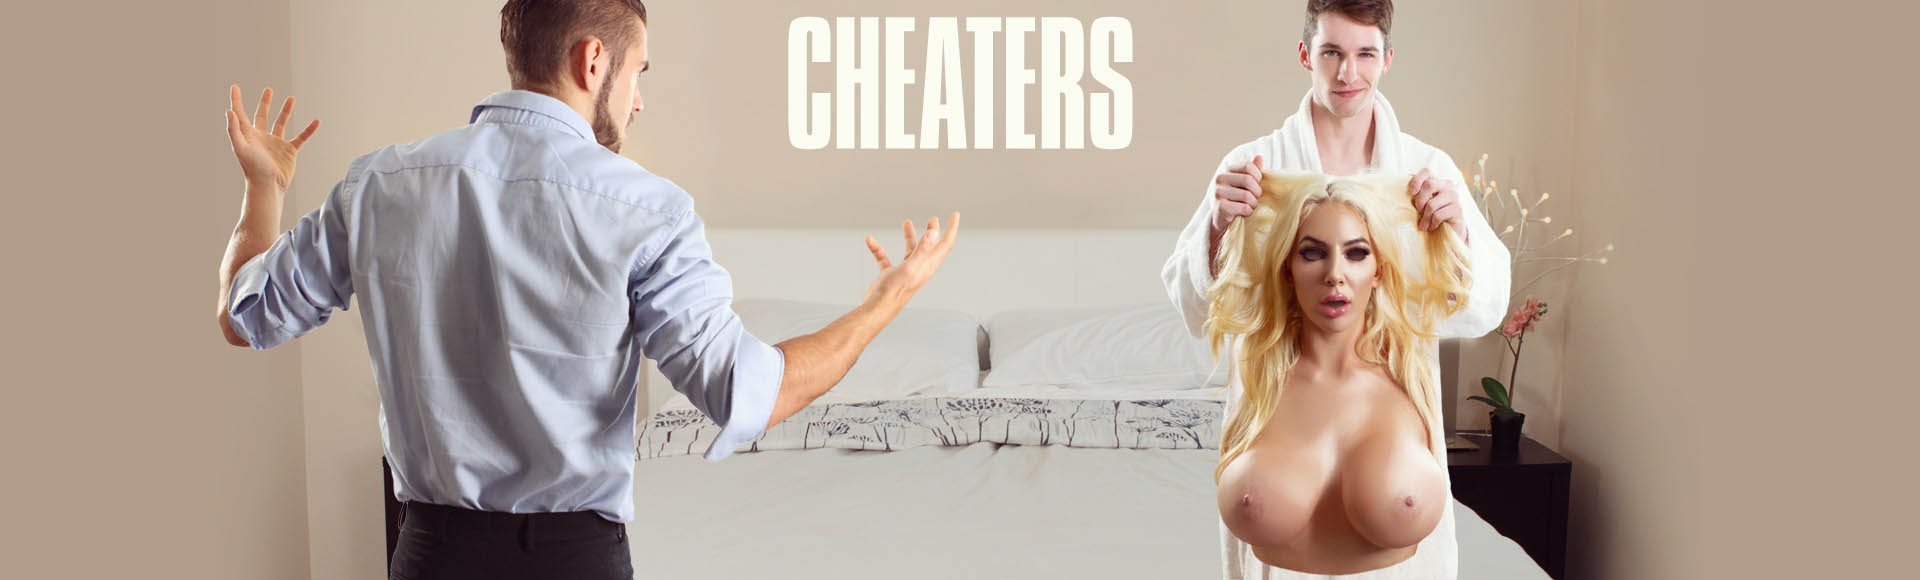 Men Network Cheaters Part 3 Featuring Dante Colle and Thyle Knoxx